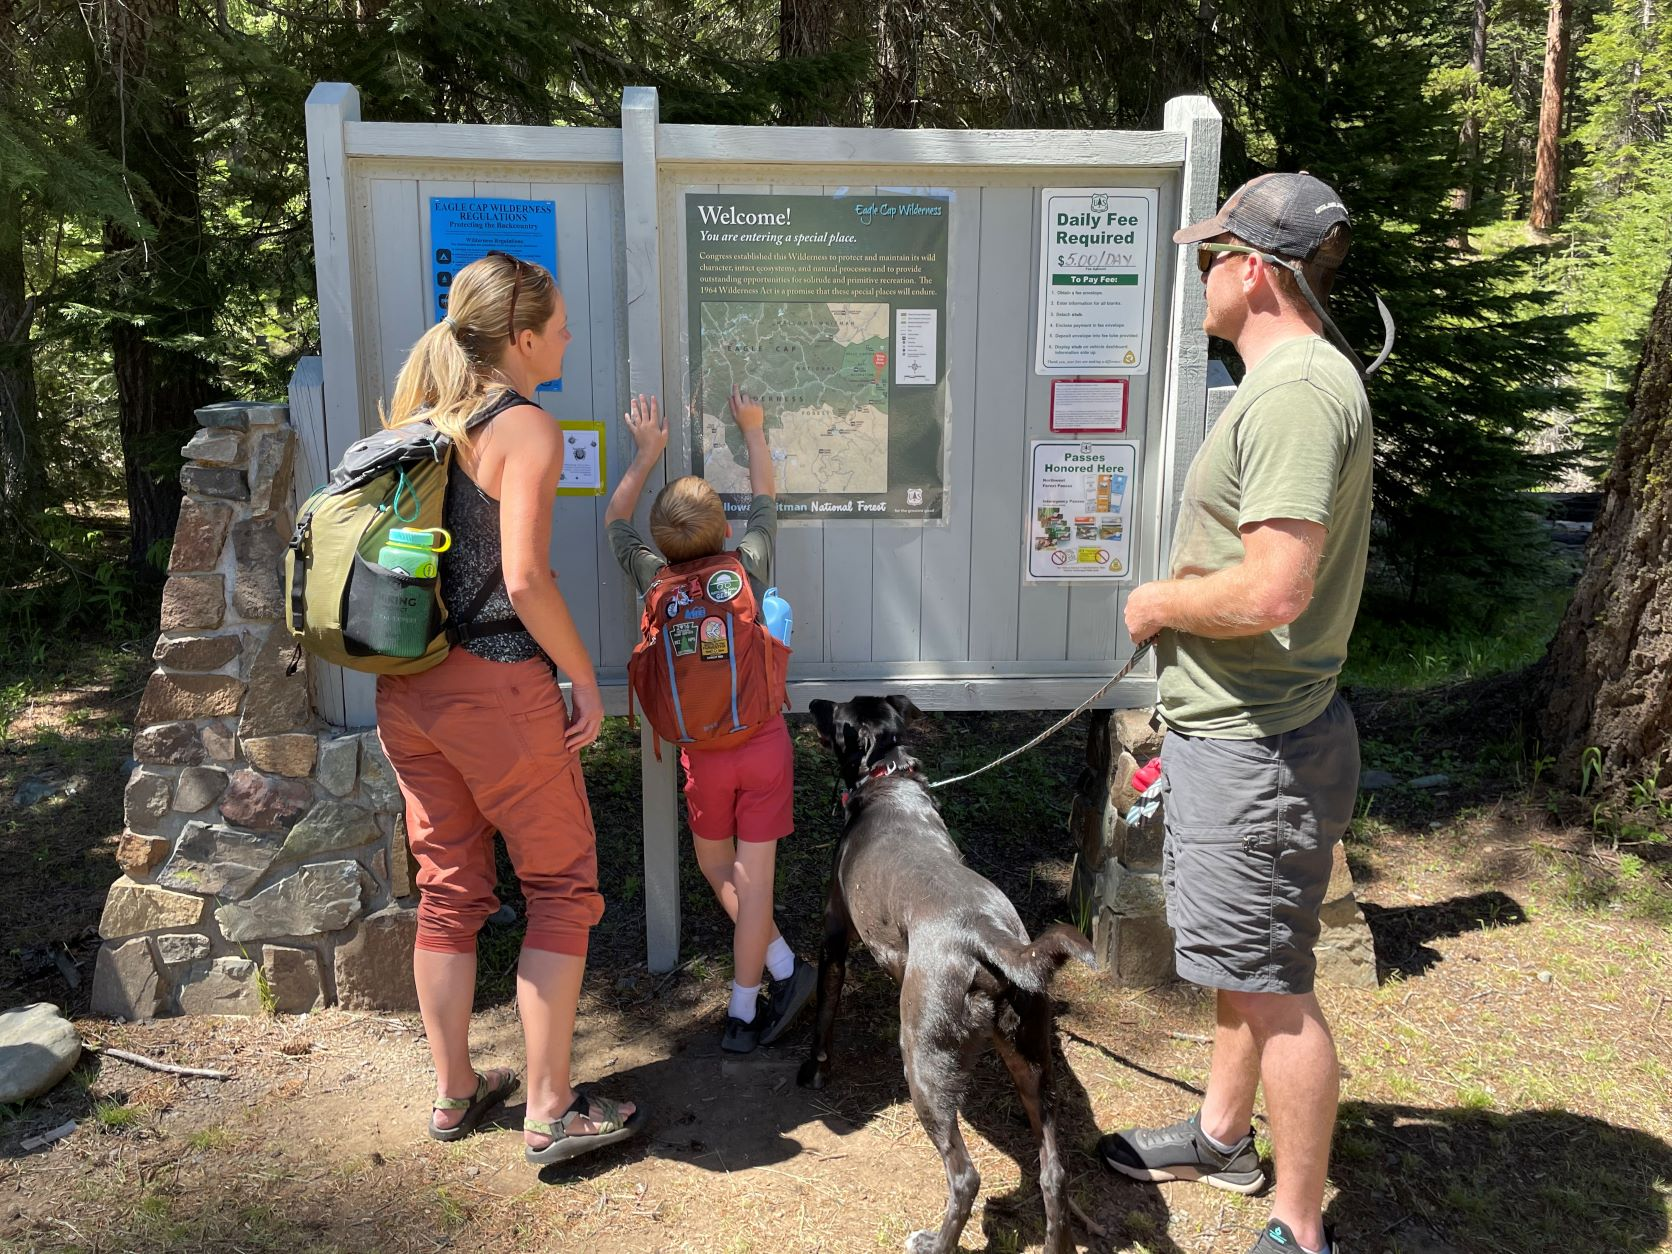 Child reading a trail map at a trailhead kiosk with two adults looking on.